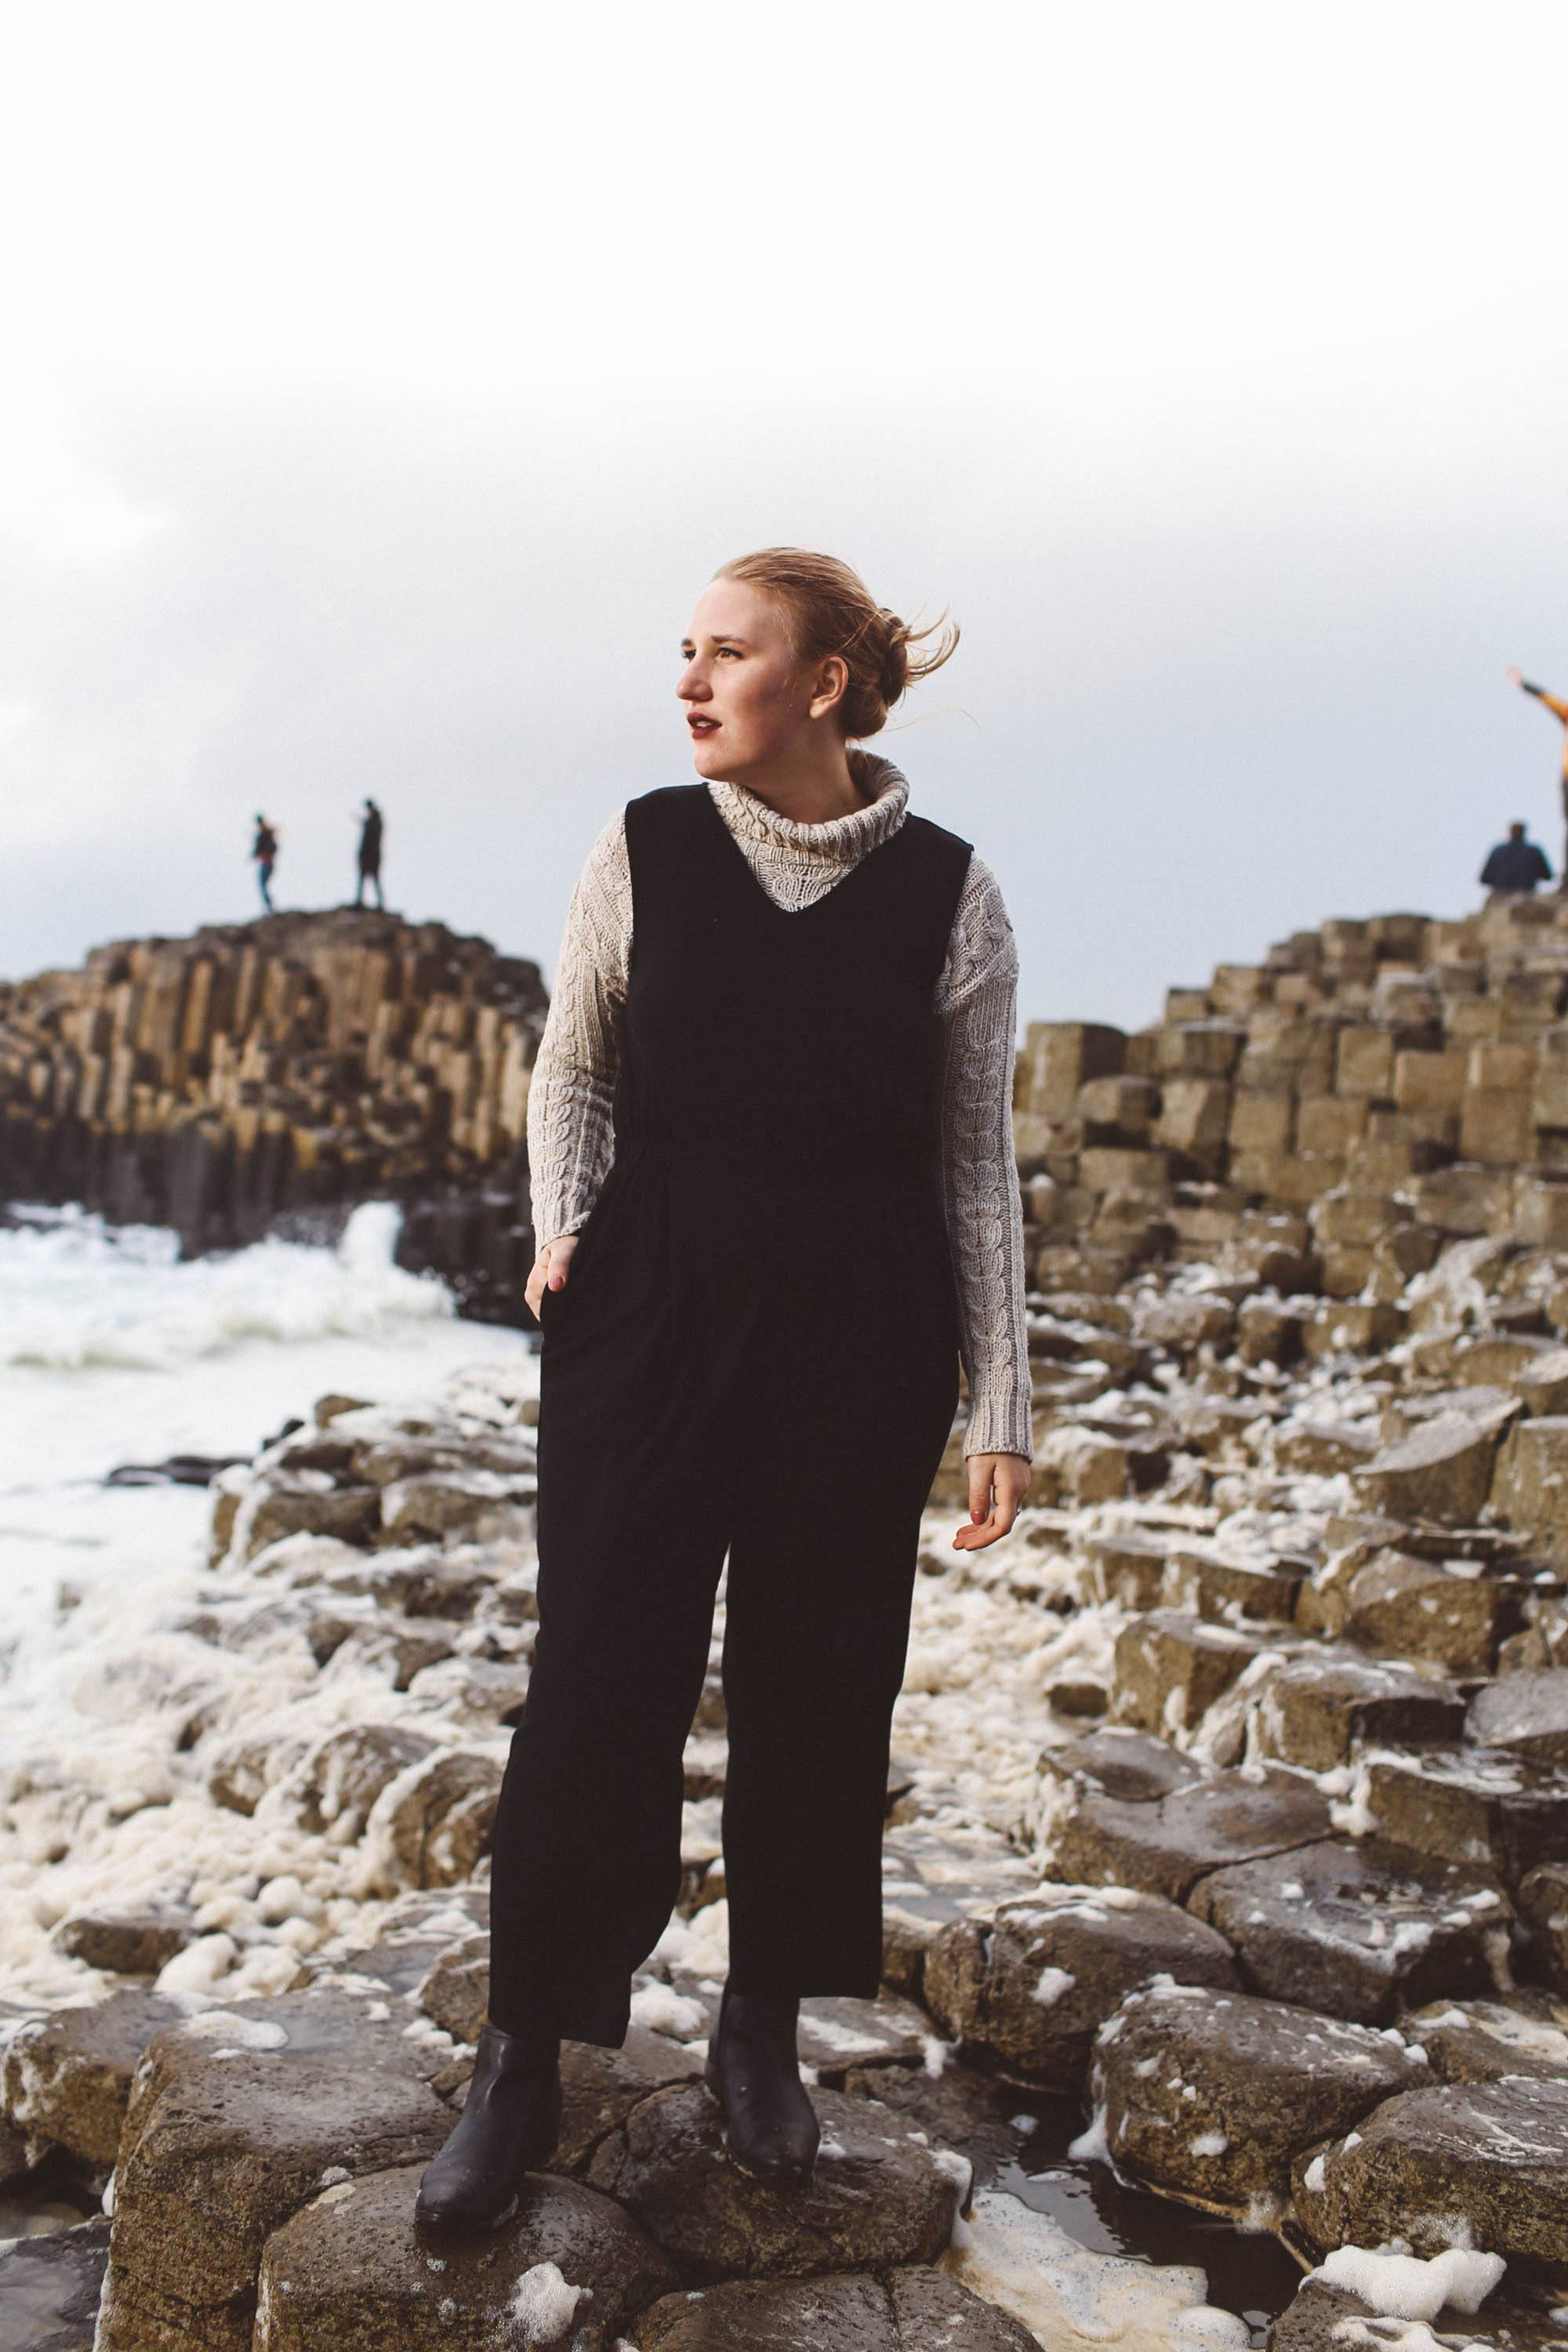 Giant's Causeway hours woman ireland